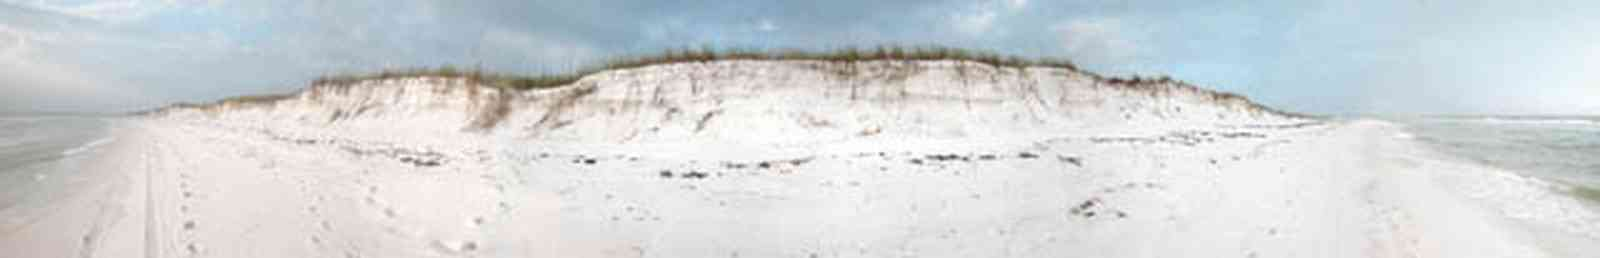 Gulf-Islands-National-Seashore:-Fort-Pickens:-Dunes_13-.jpg:  dunes, beachfront, sand, surf, waves, island